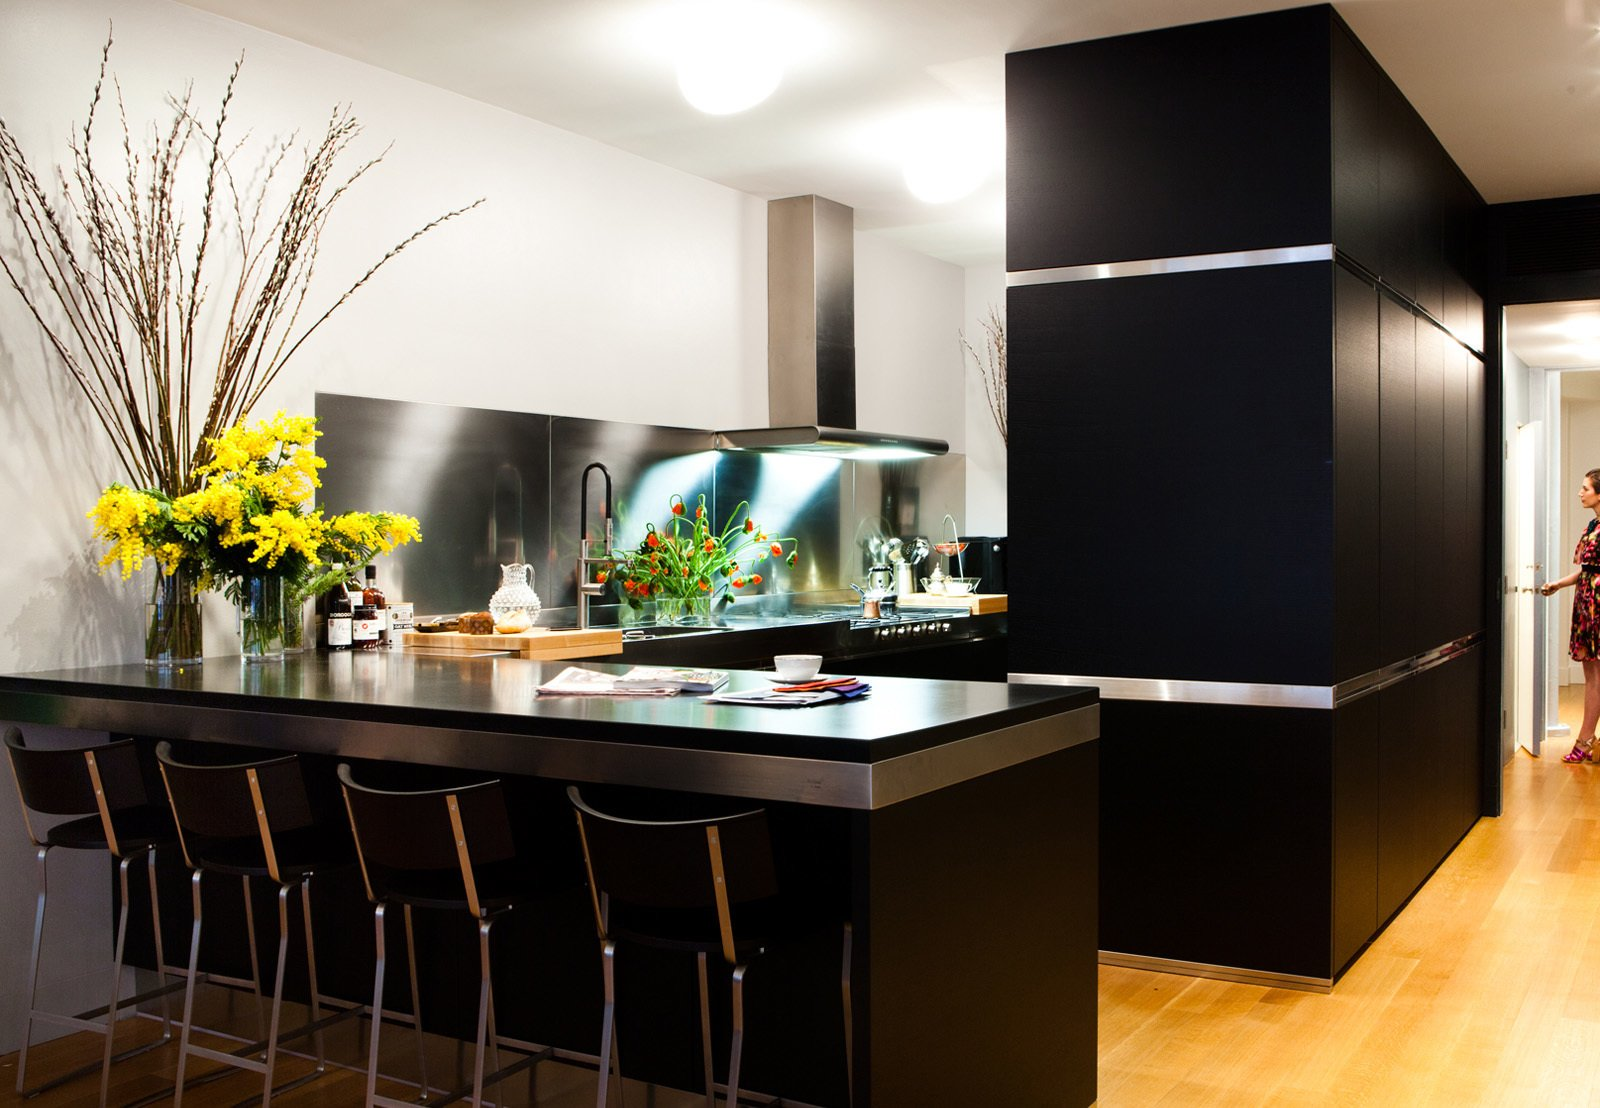 Arclinea's black cabinets with stainless-steel trim outfit the Manhattan kitchen of Dana Dramov.  Photo 11 of 11 in 10 Stunning Ways to Use Black in Your Kitchen from A Modern Kitchen Renovation in New York